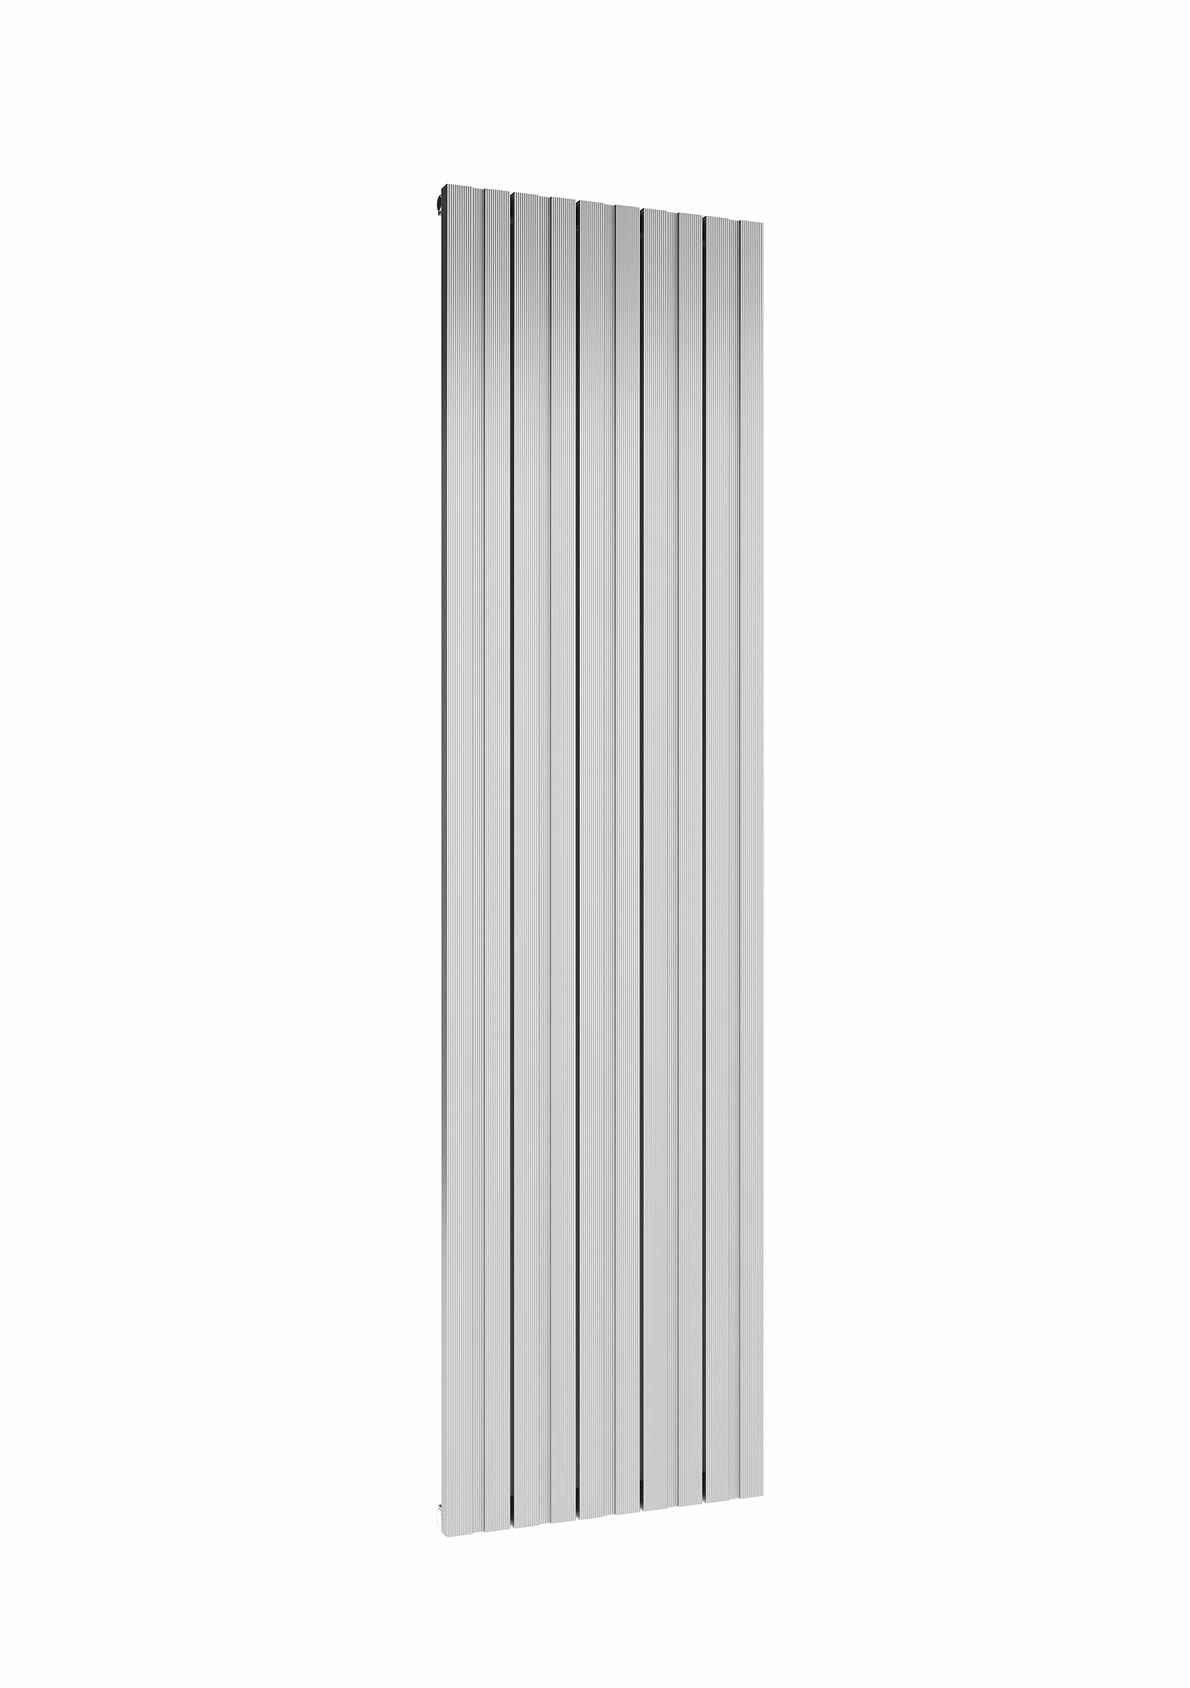 BOVA 1800 x 470 POLISHED SINGLE PANEL VERTICAL ALUMINIUM RADIATOR